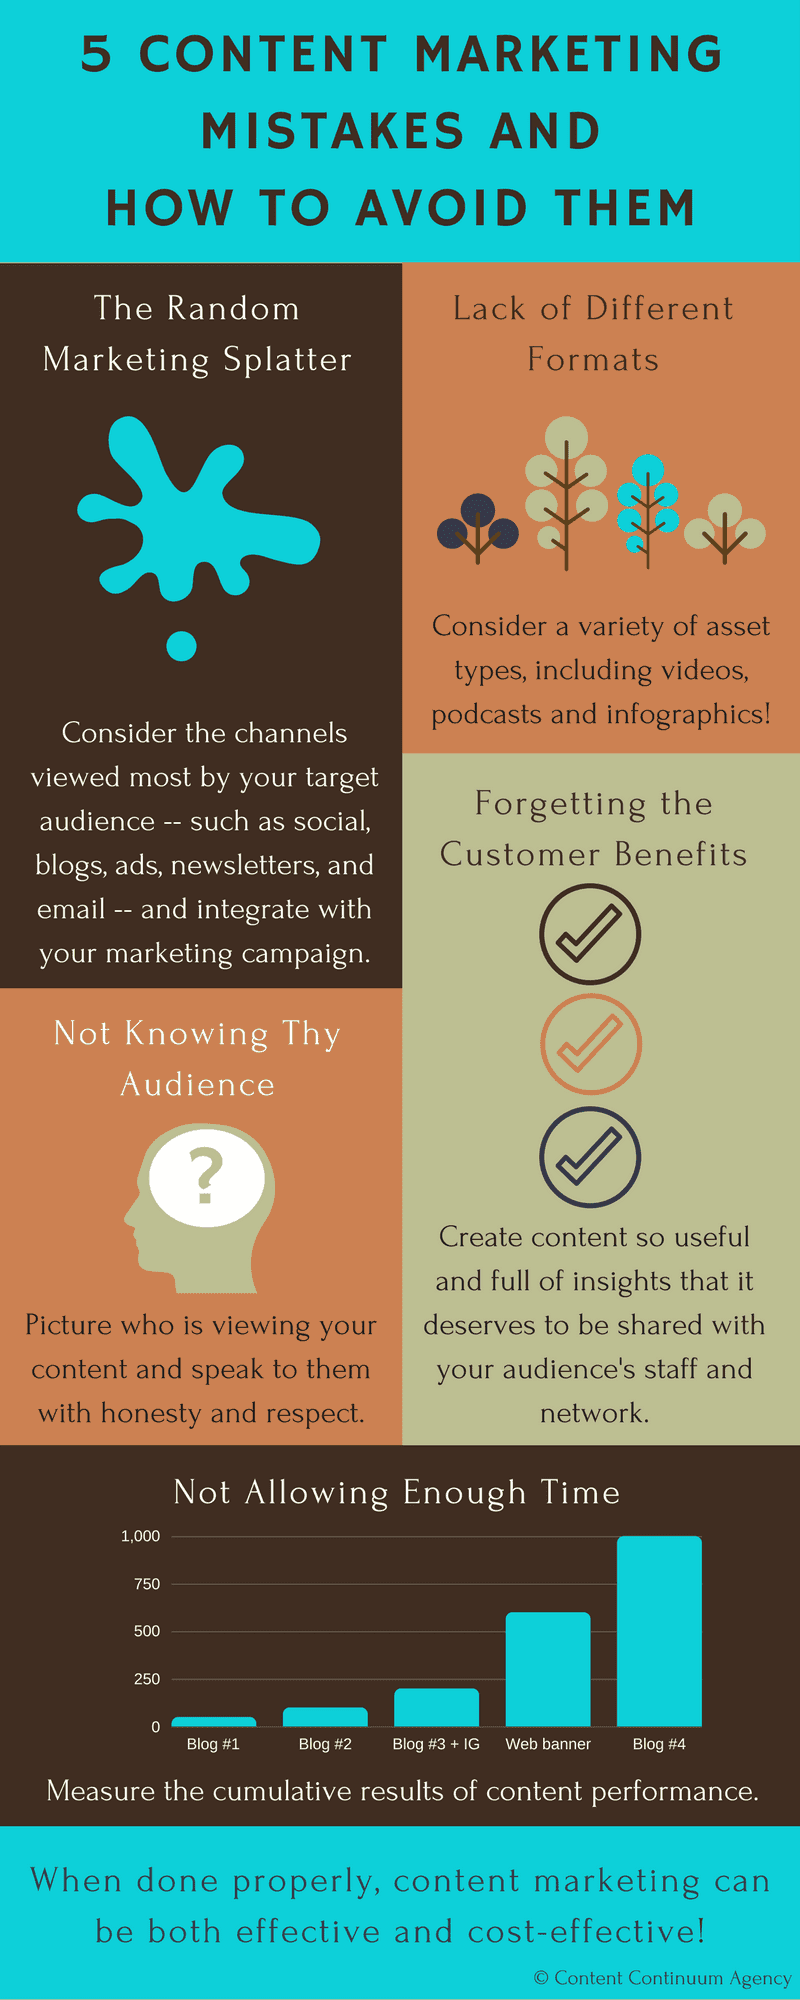 For more on content marketing mistakes and how to avoid them, check out this great infographic.